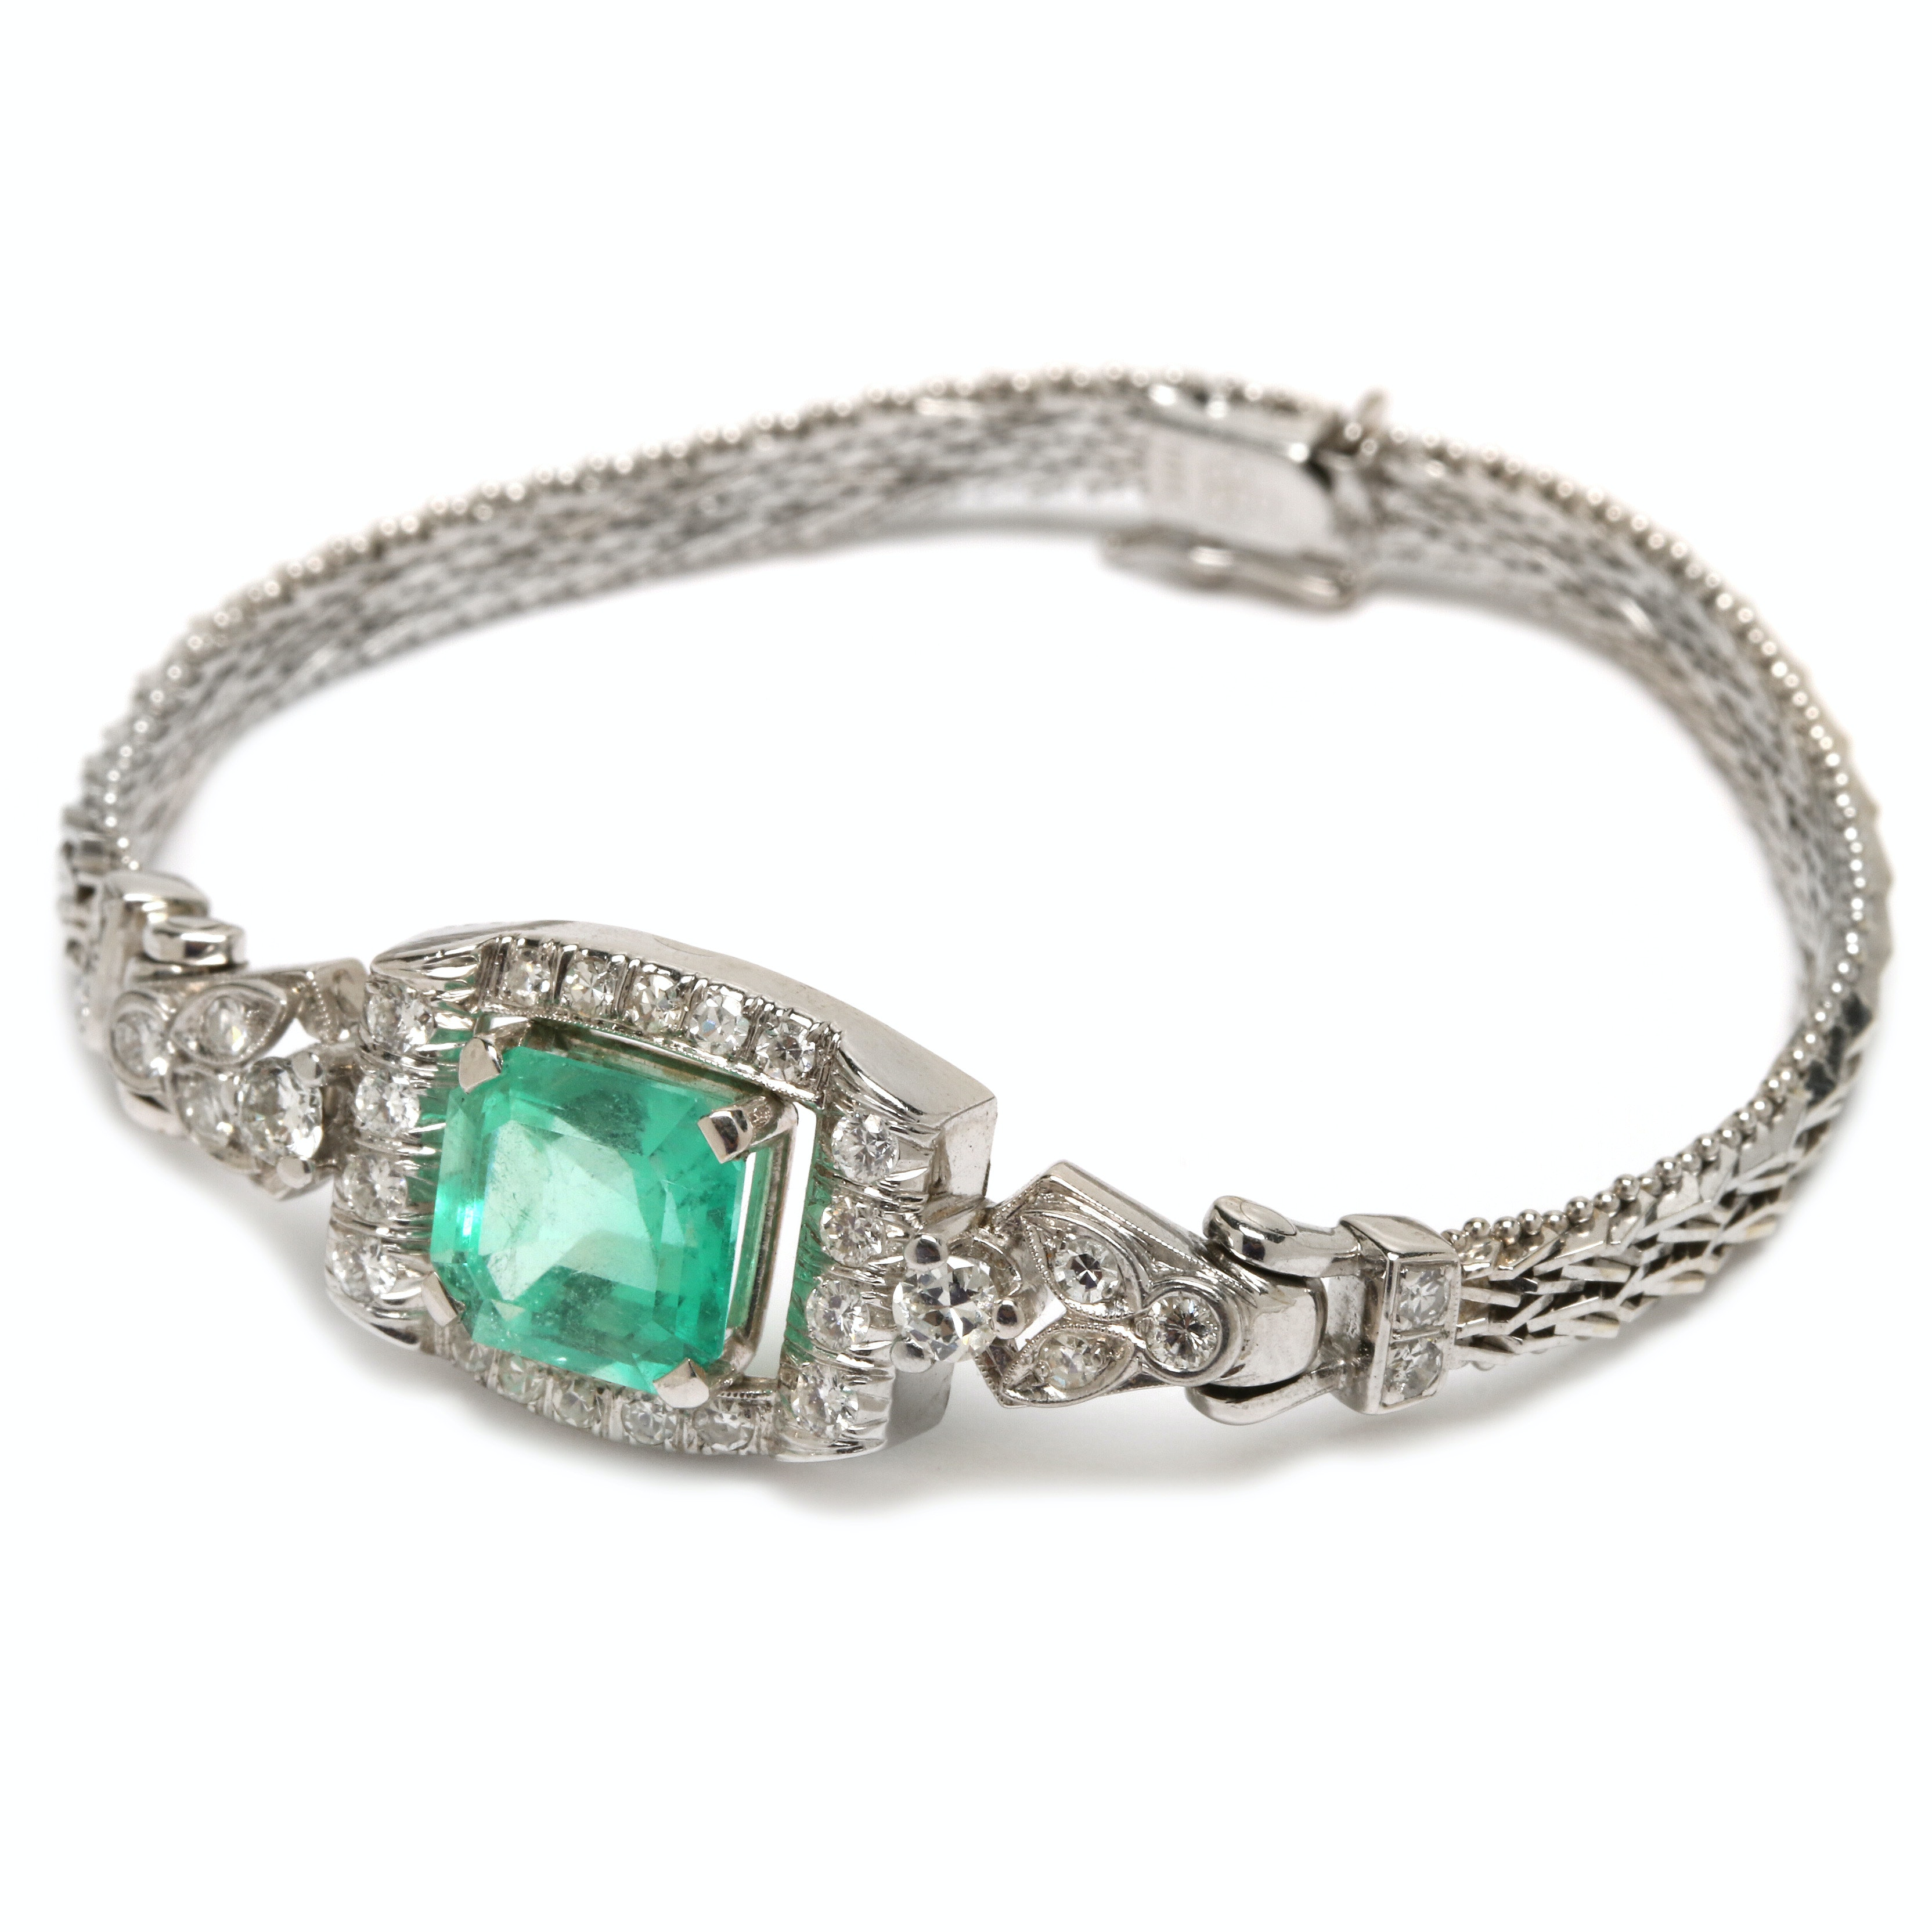 14K White Gold 3.53 CT Emerald and Diamond Converted Watch Band Bracelet